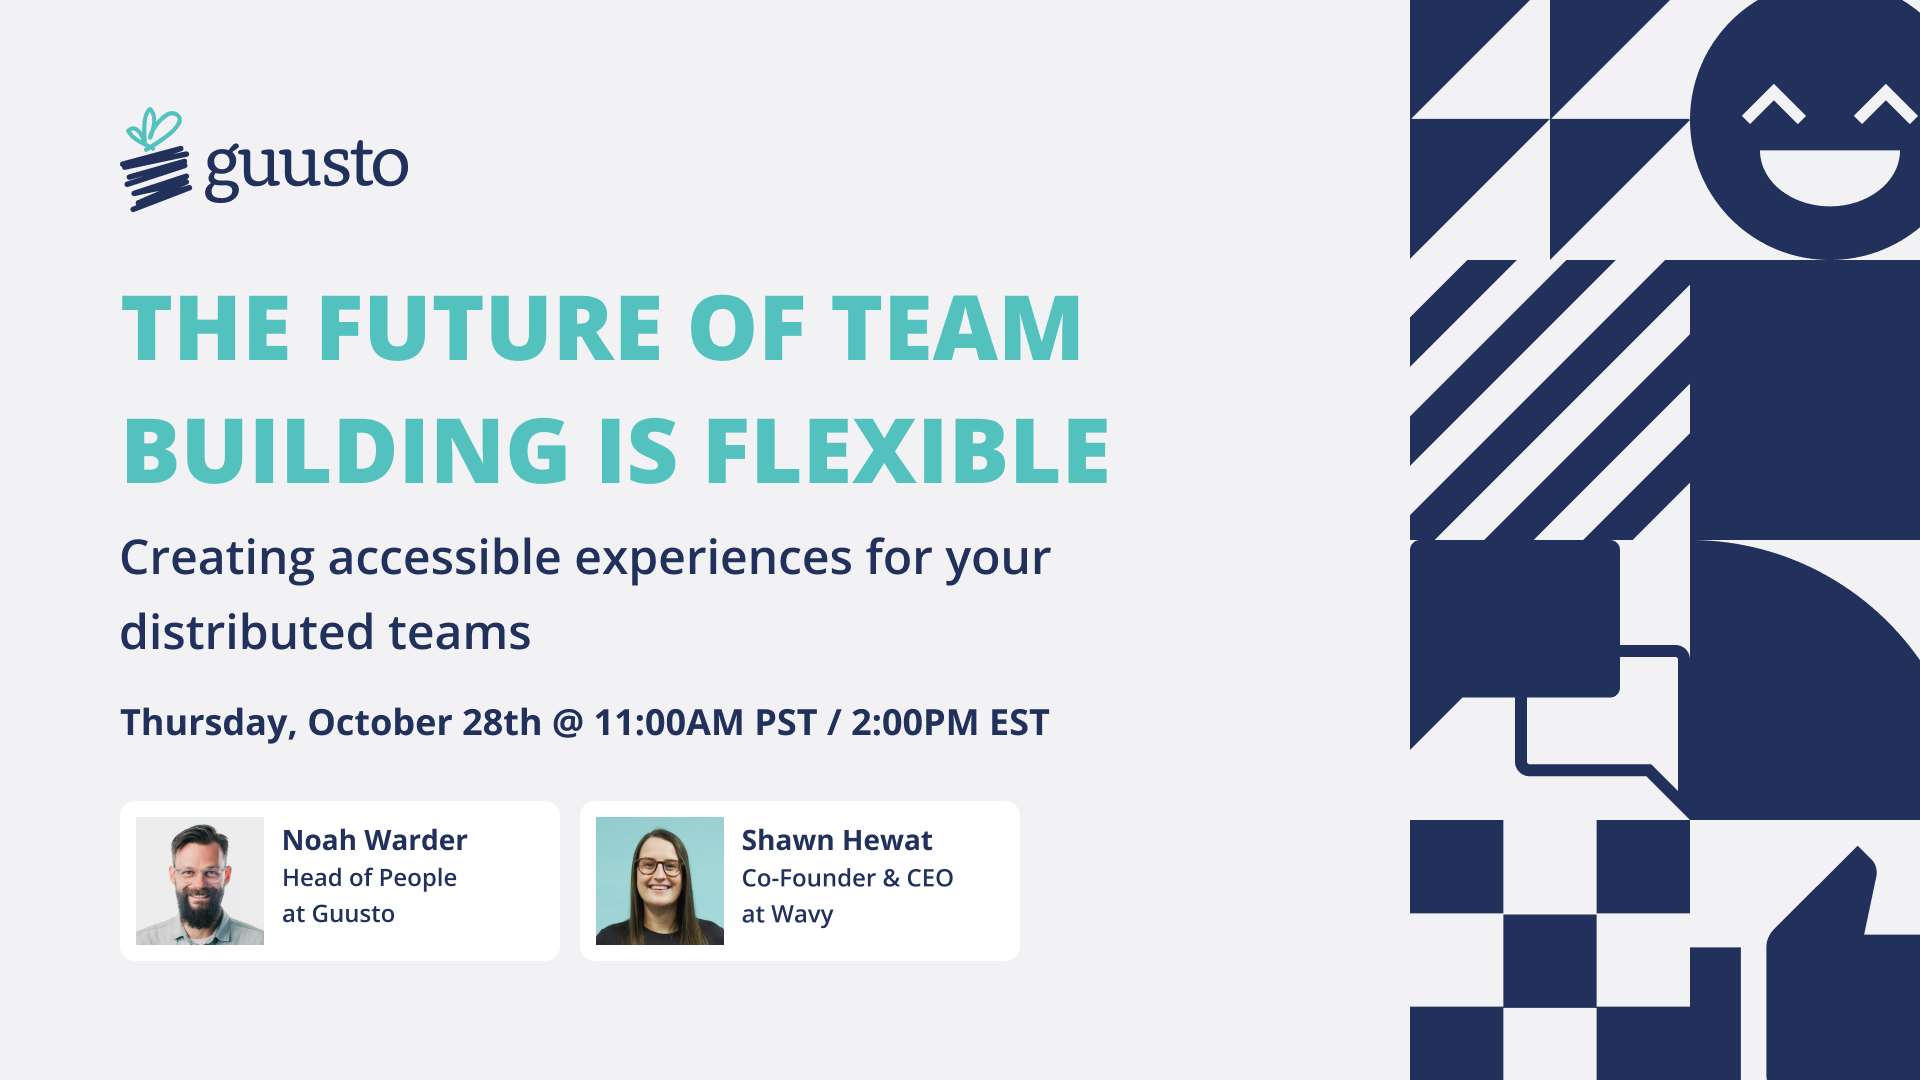 The Future of Team Building is Flexible